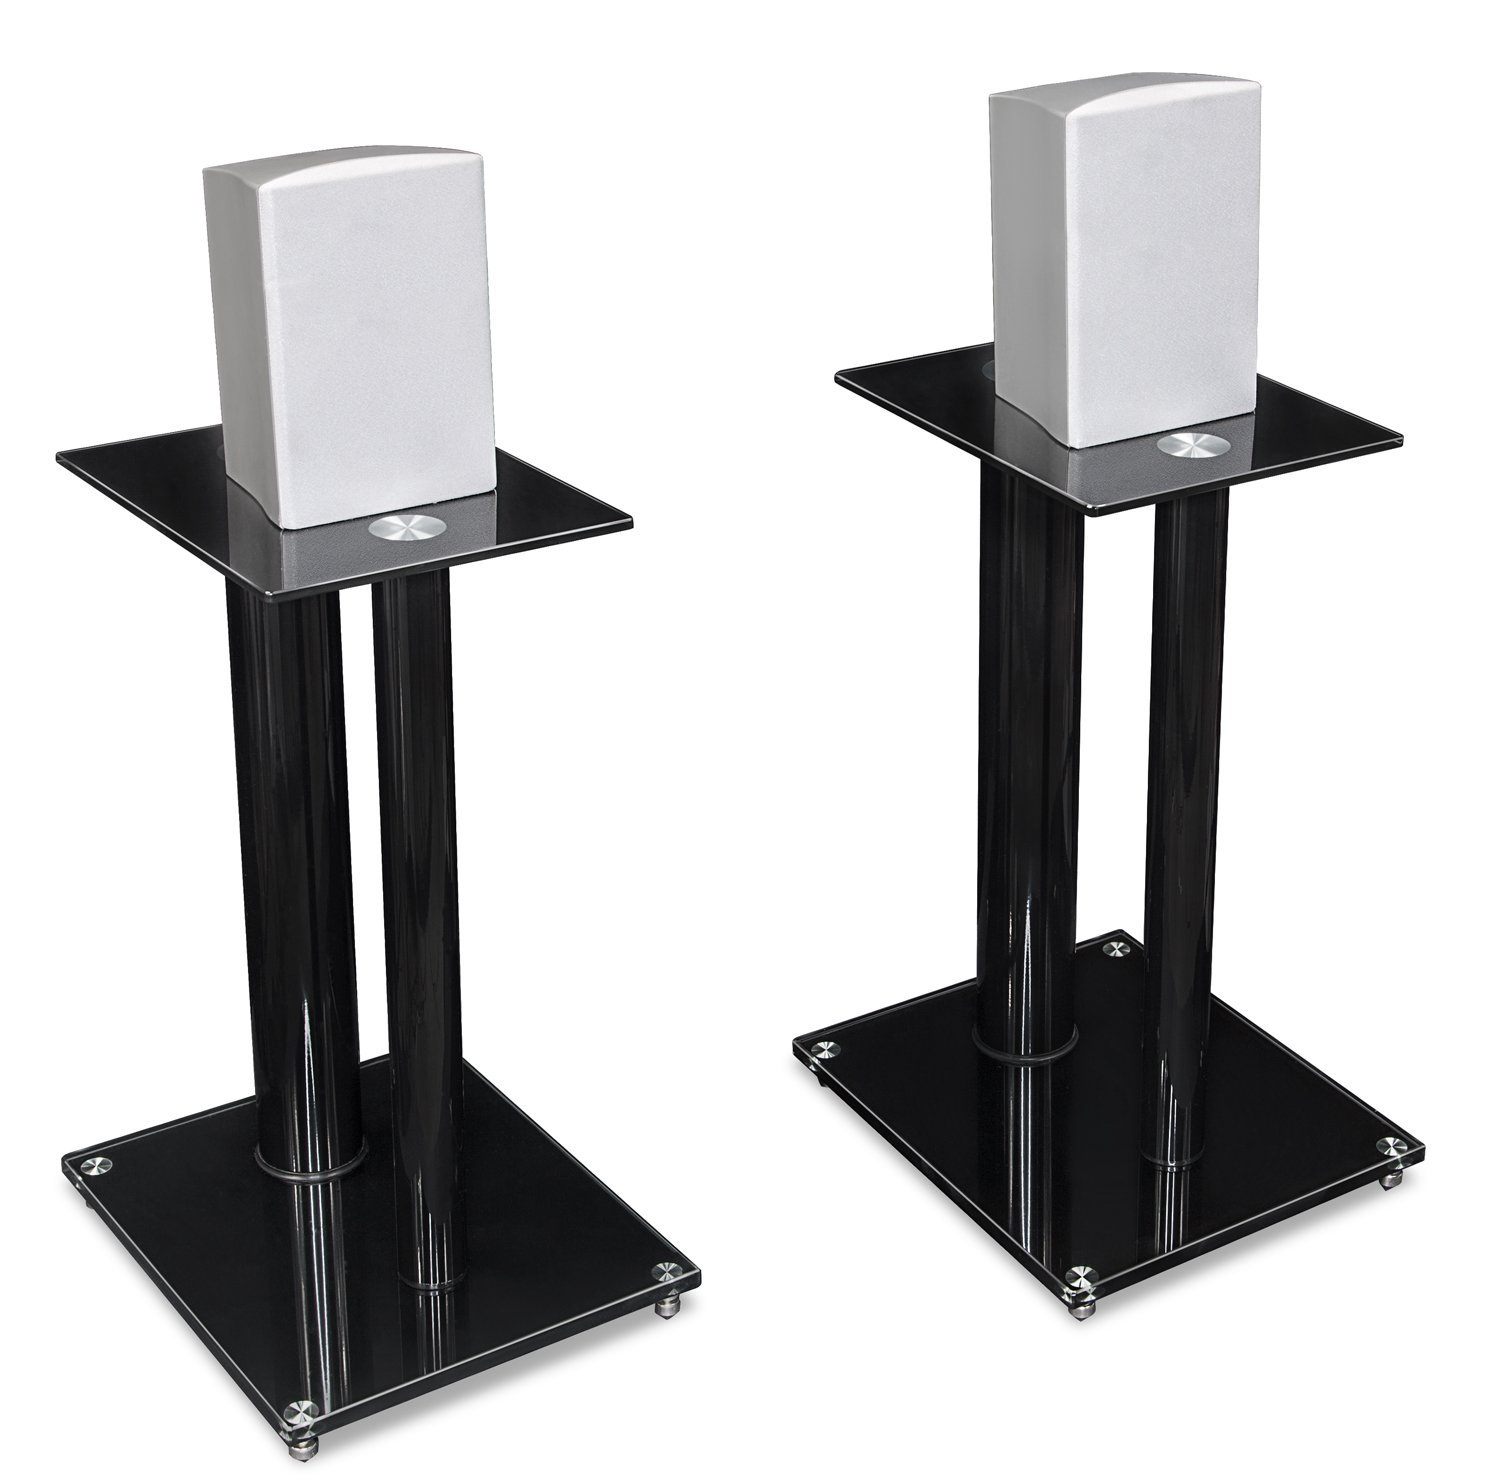 mount-it! speaker stands for book shelf and surround sound speakers